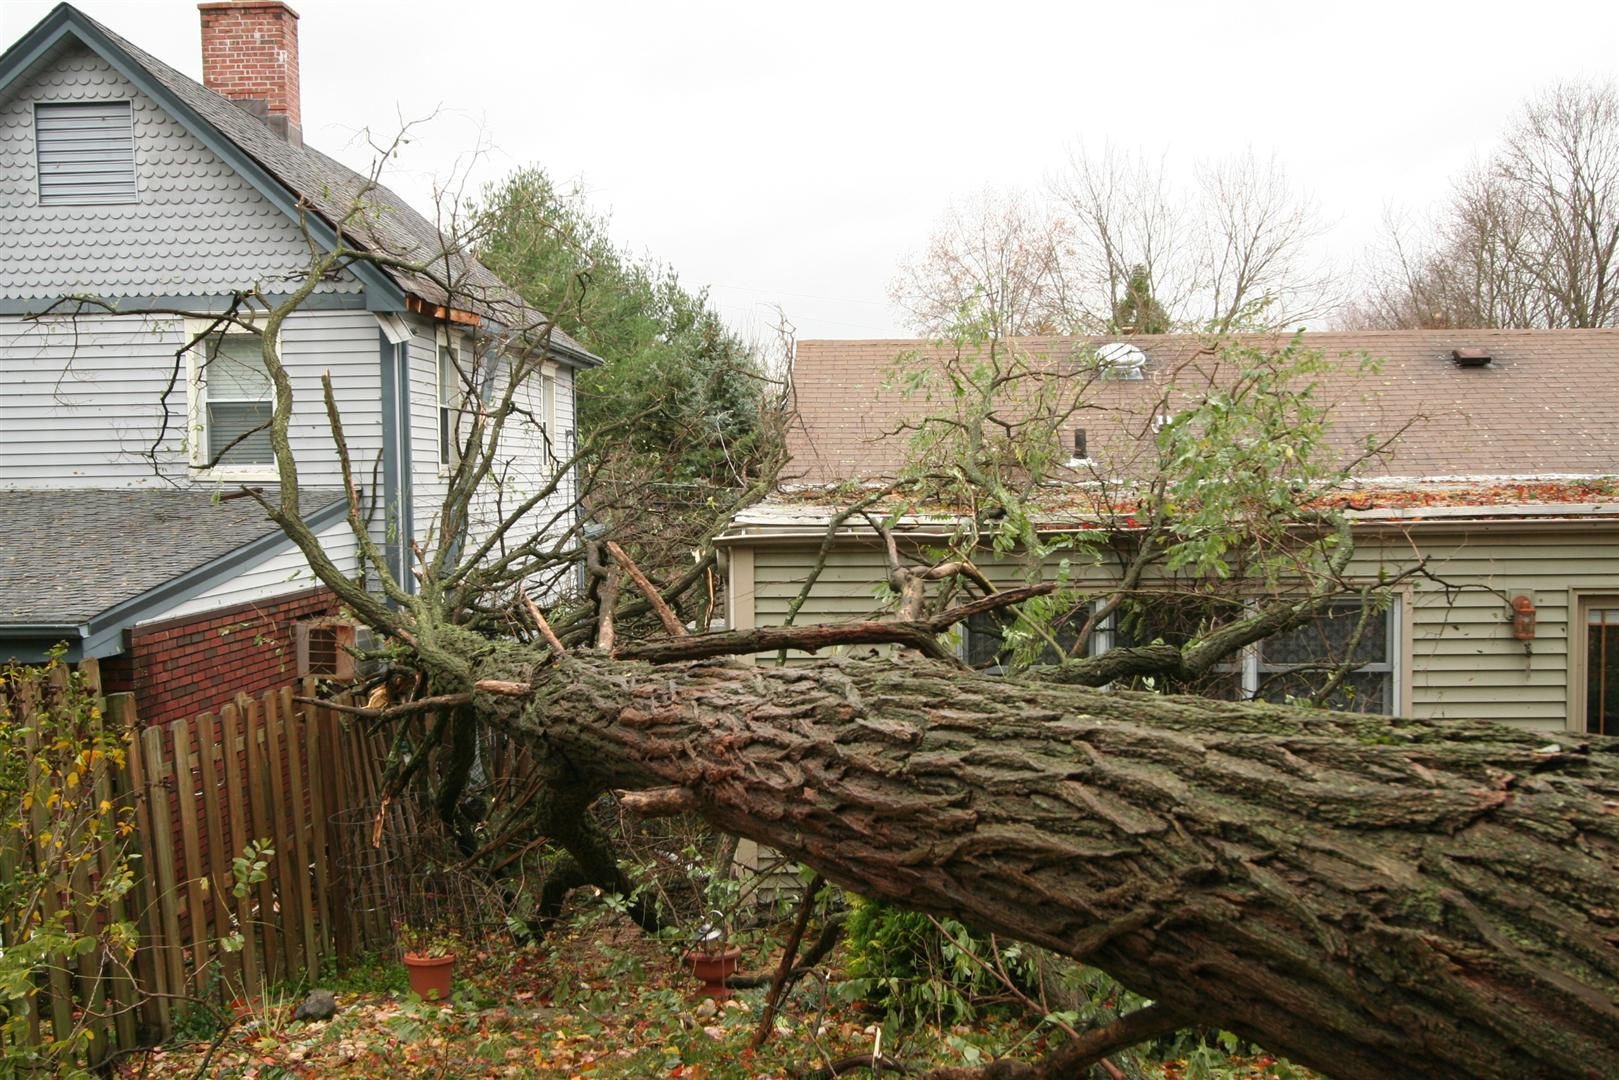 Storm Damage Cleanup Disaster Response And Restoration